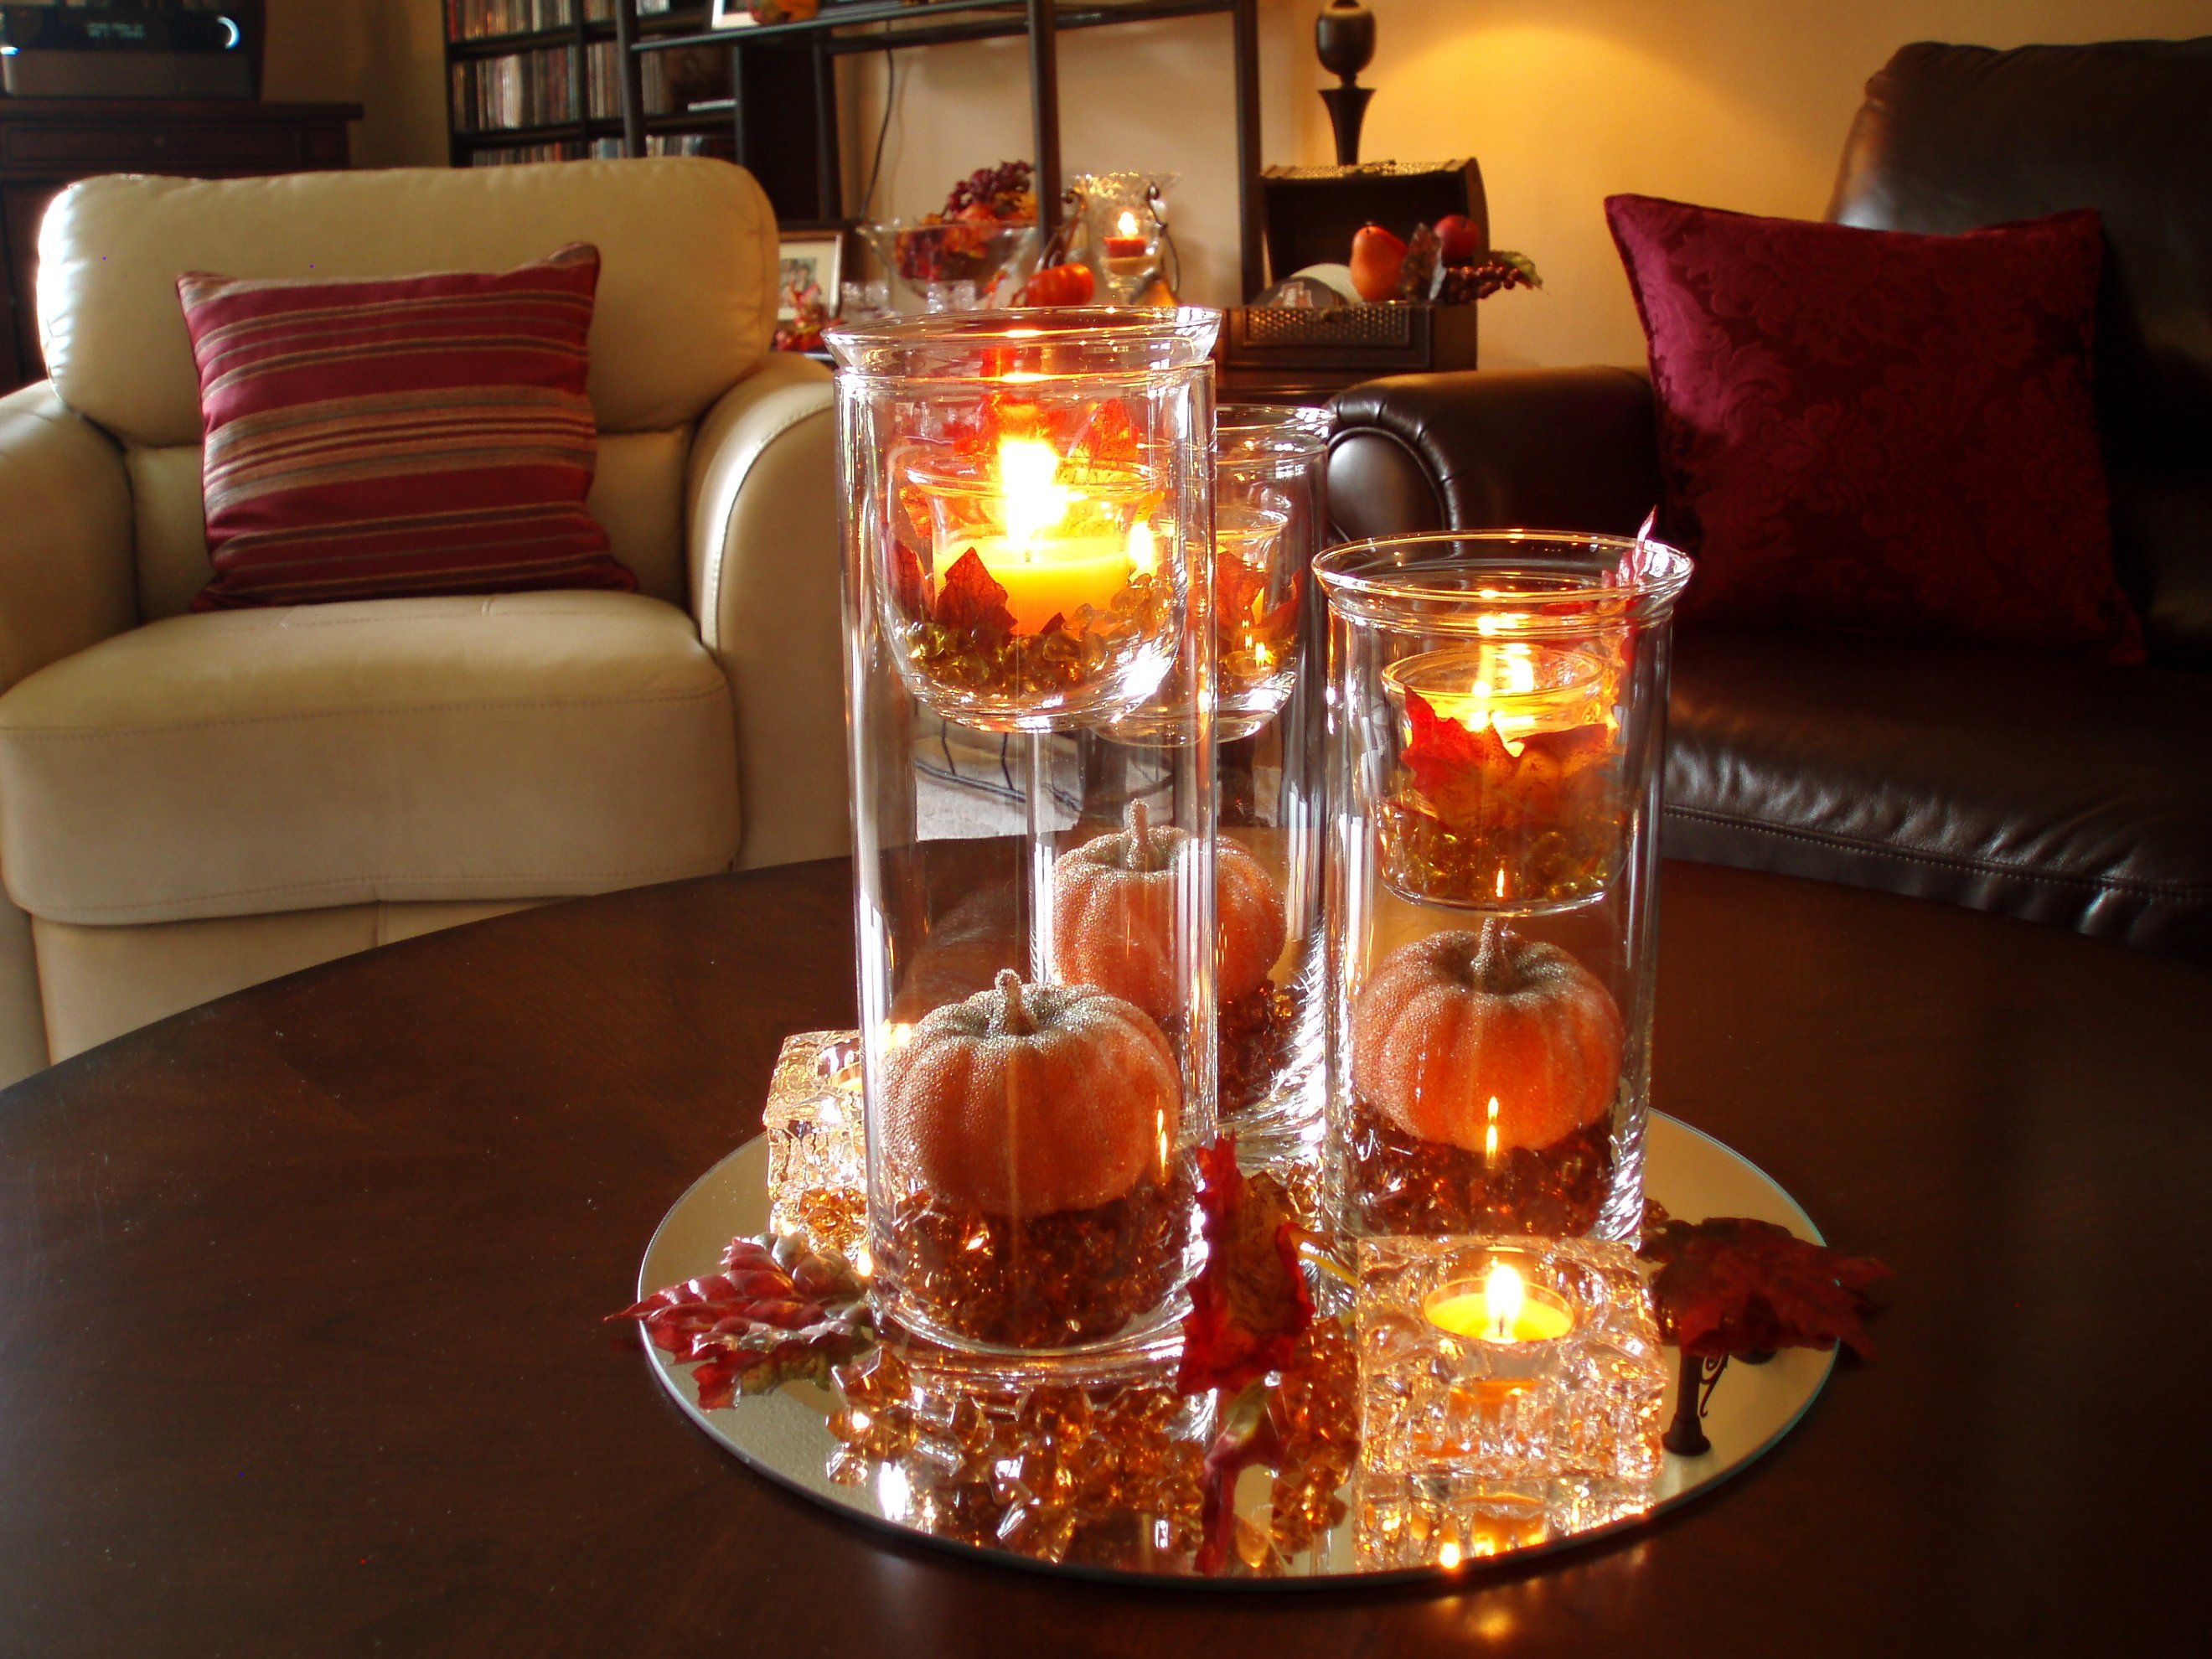 Chic Small Coffee Table Decorations Design With Red Rose Flower